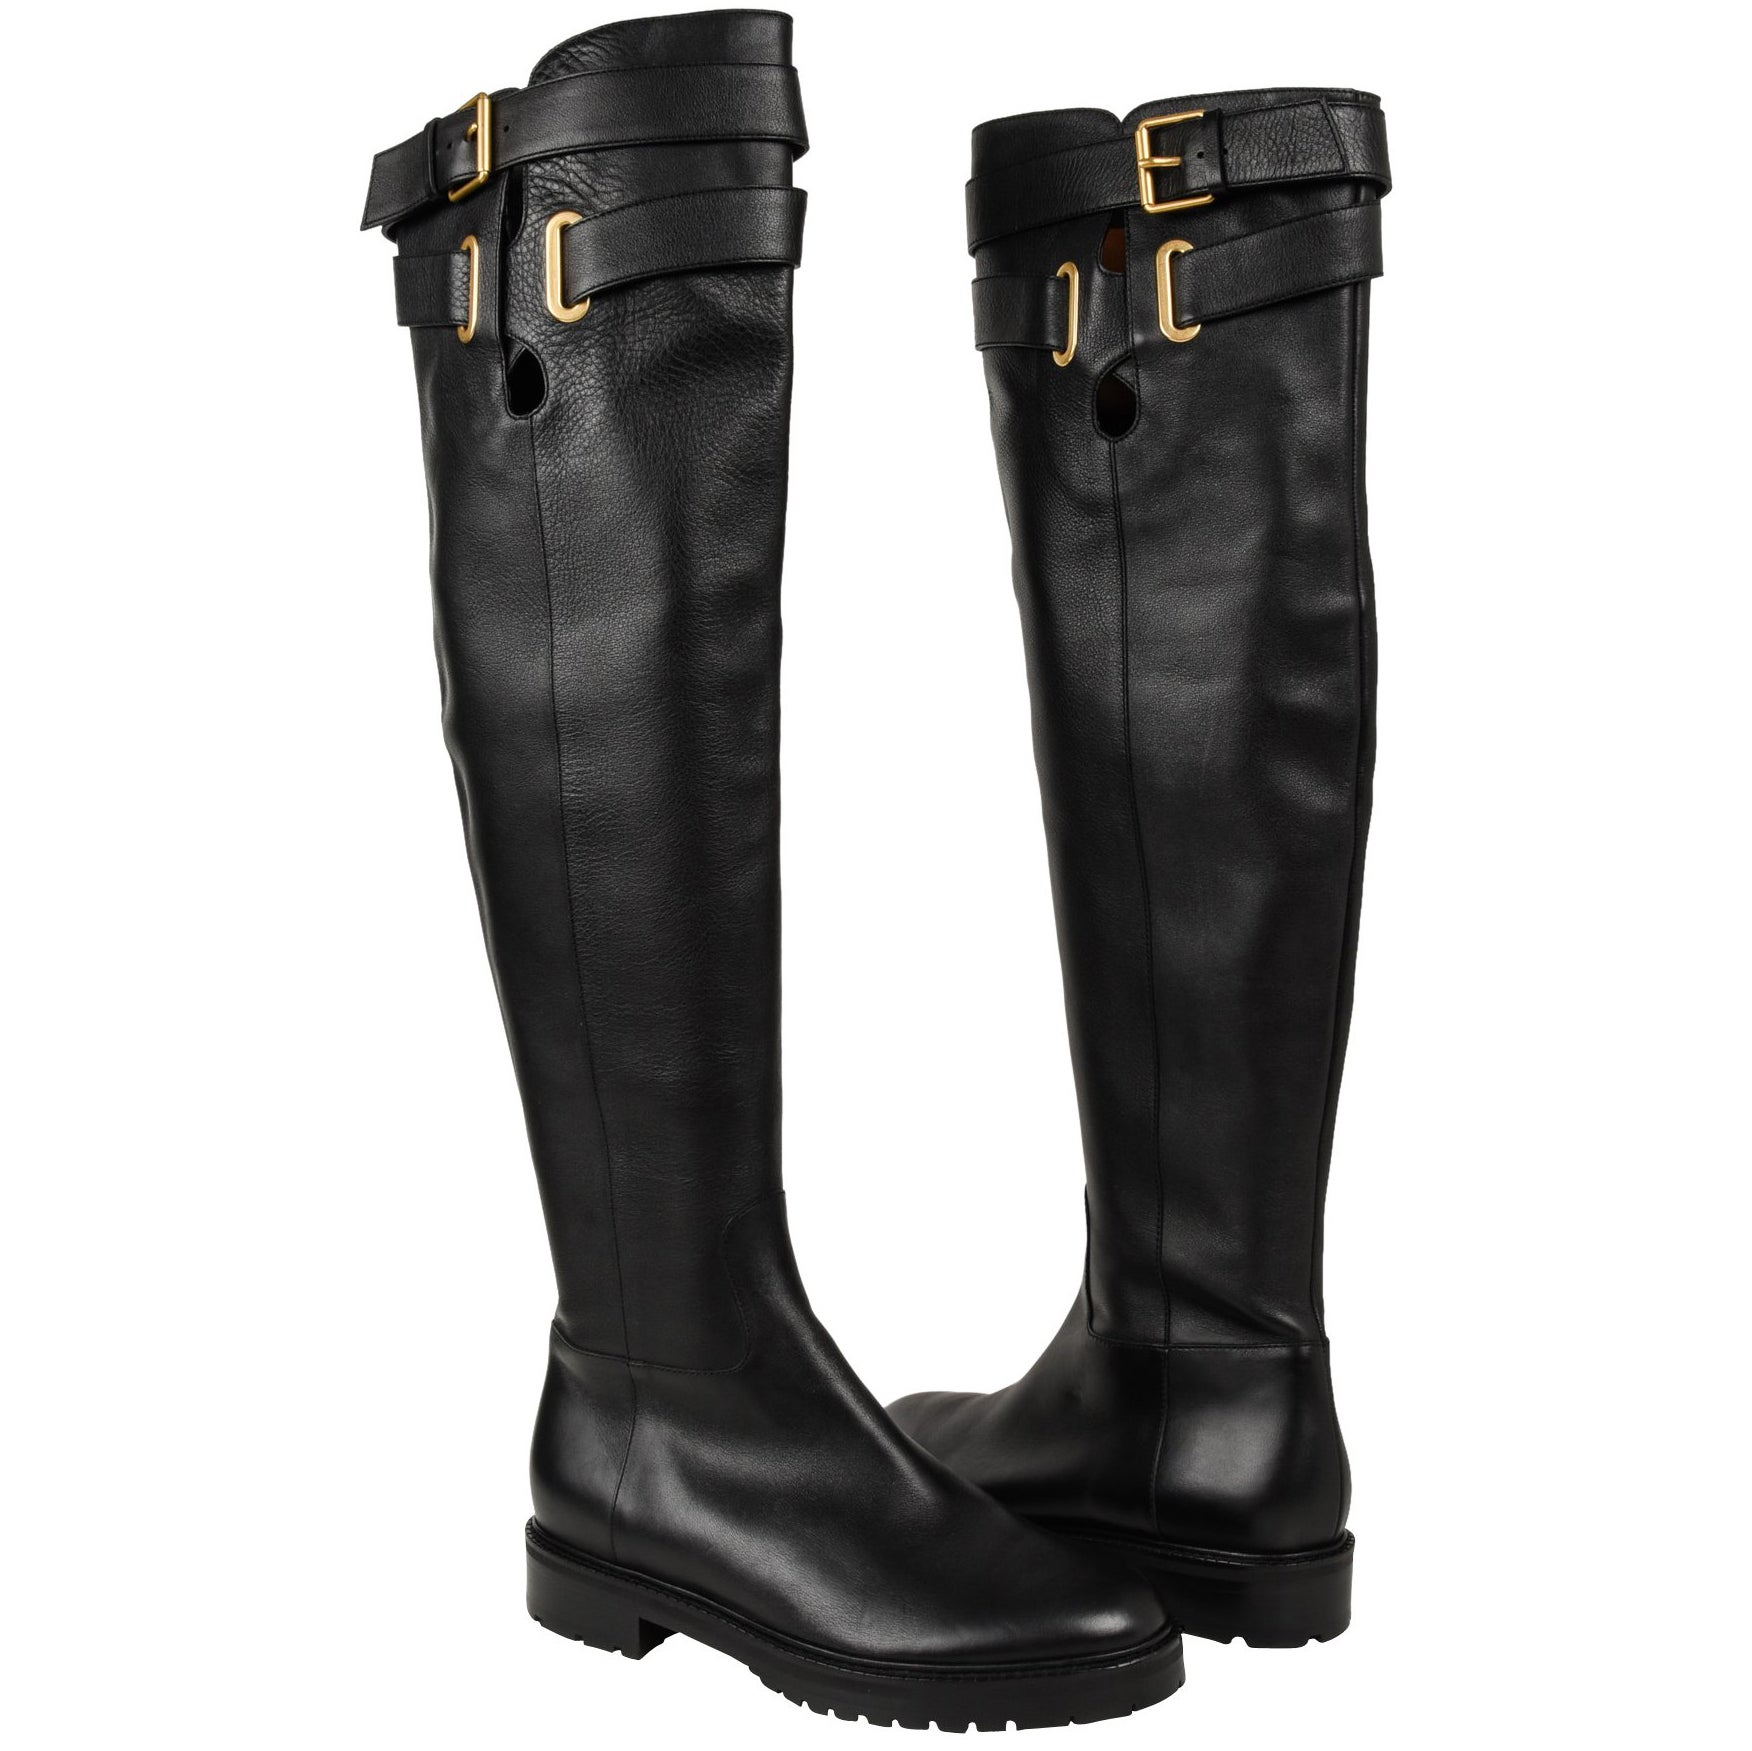 1b1629100fc Valentino Boots Over Knee Black Flat Crisscross Straps w  Buckle 39.5   9.5  New at 1stdibs